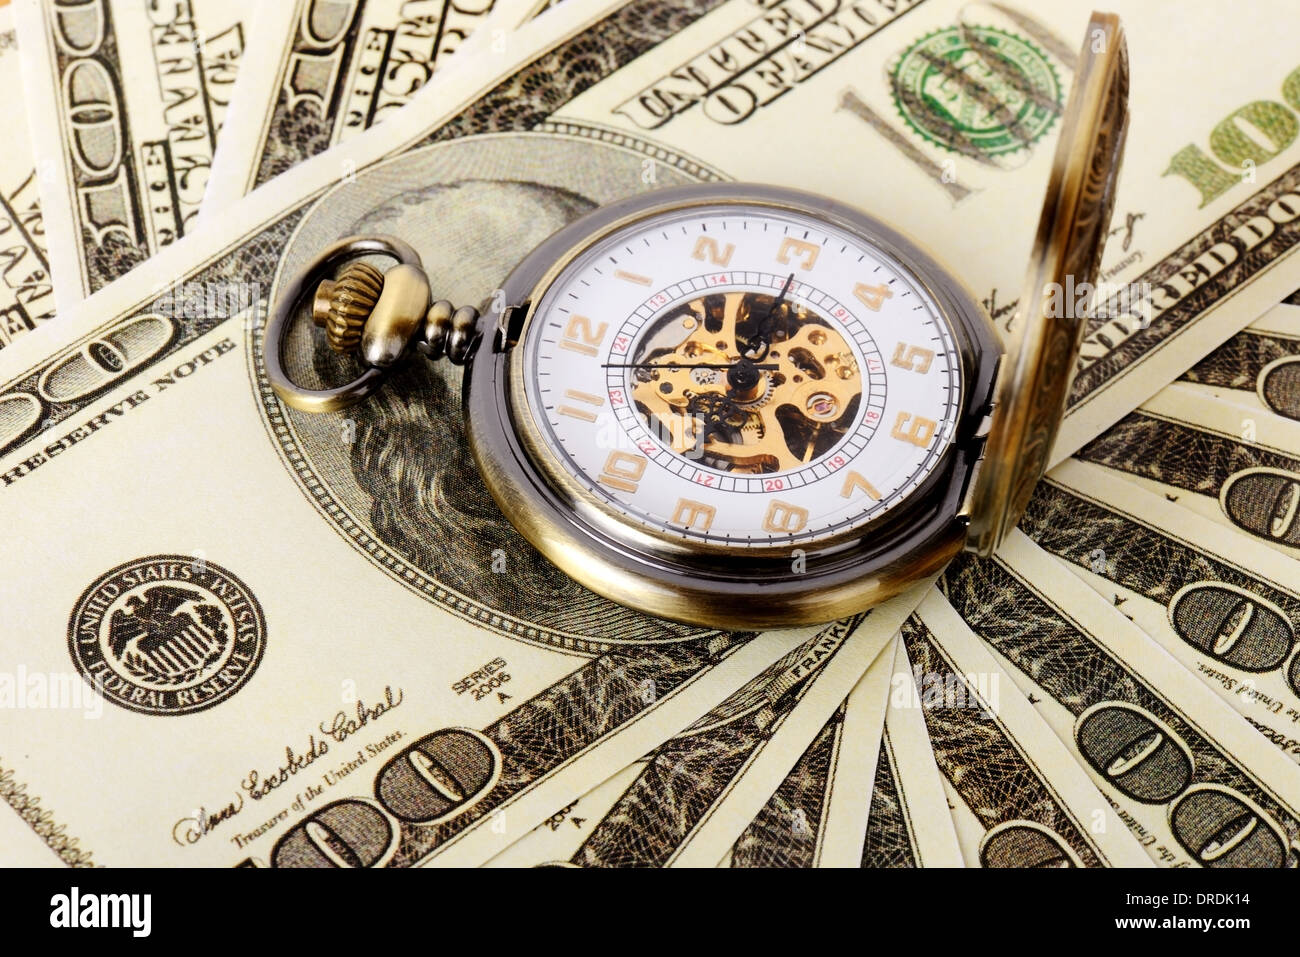 Macro shot of pocket watch face with 100 dollar bill Ben Franklin. - Stock Image